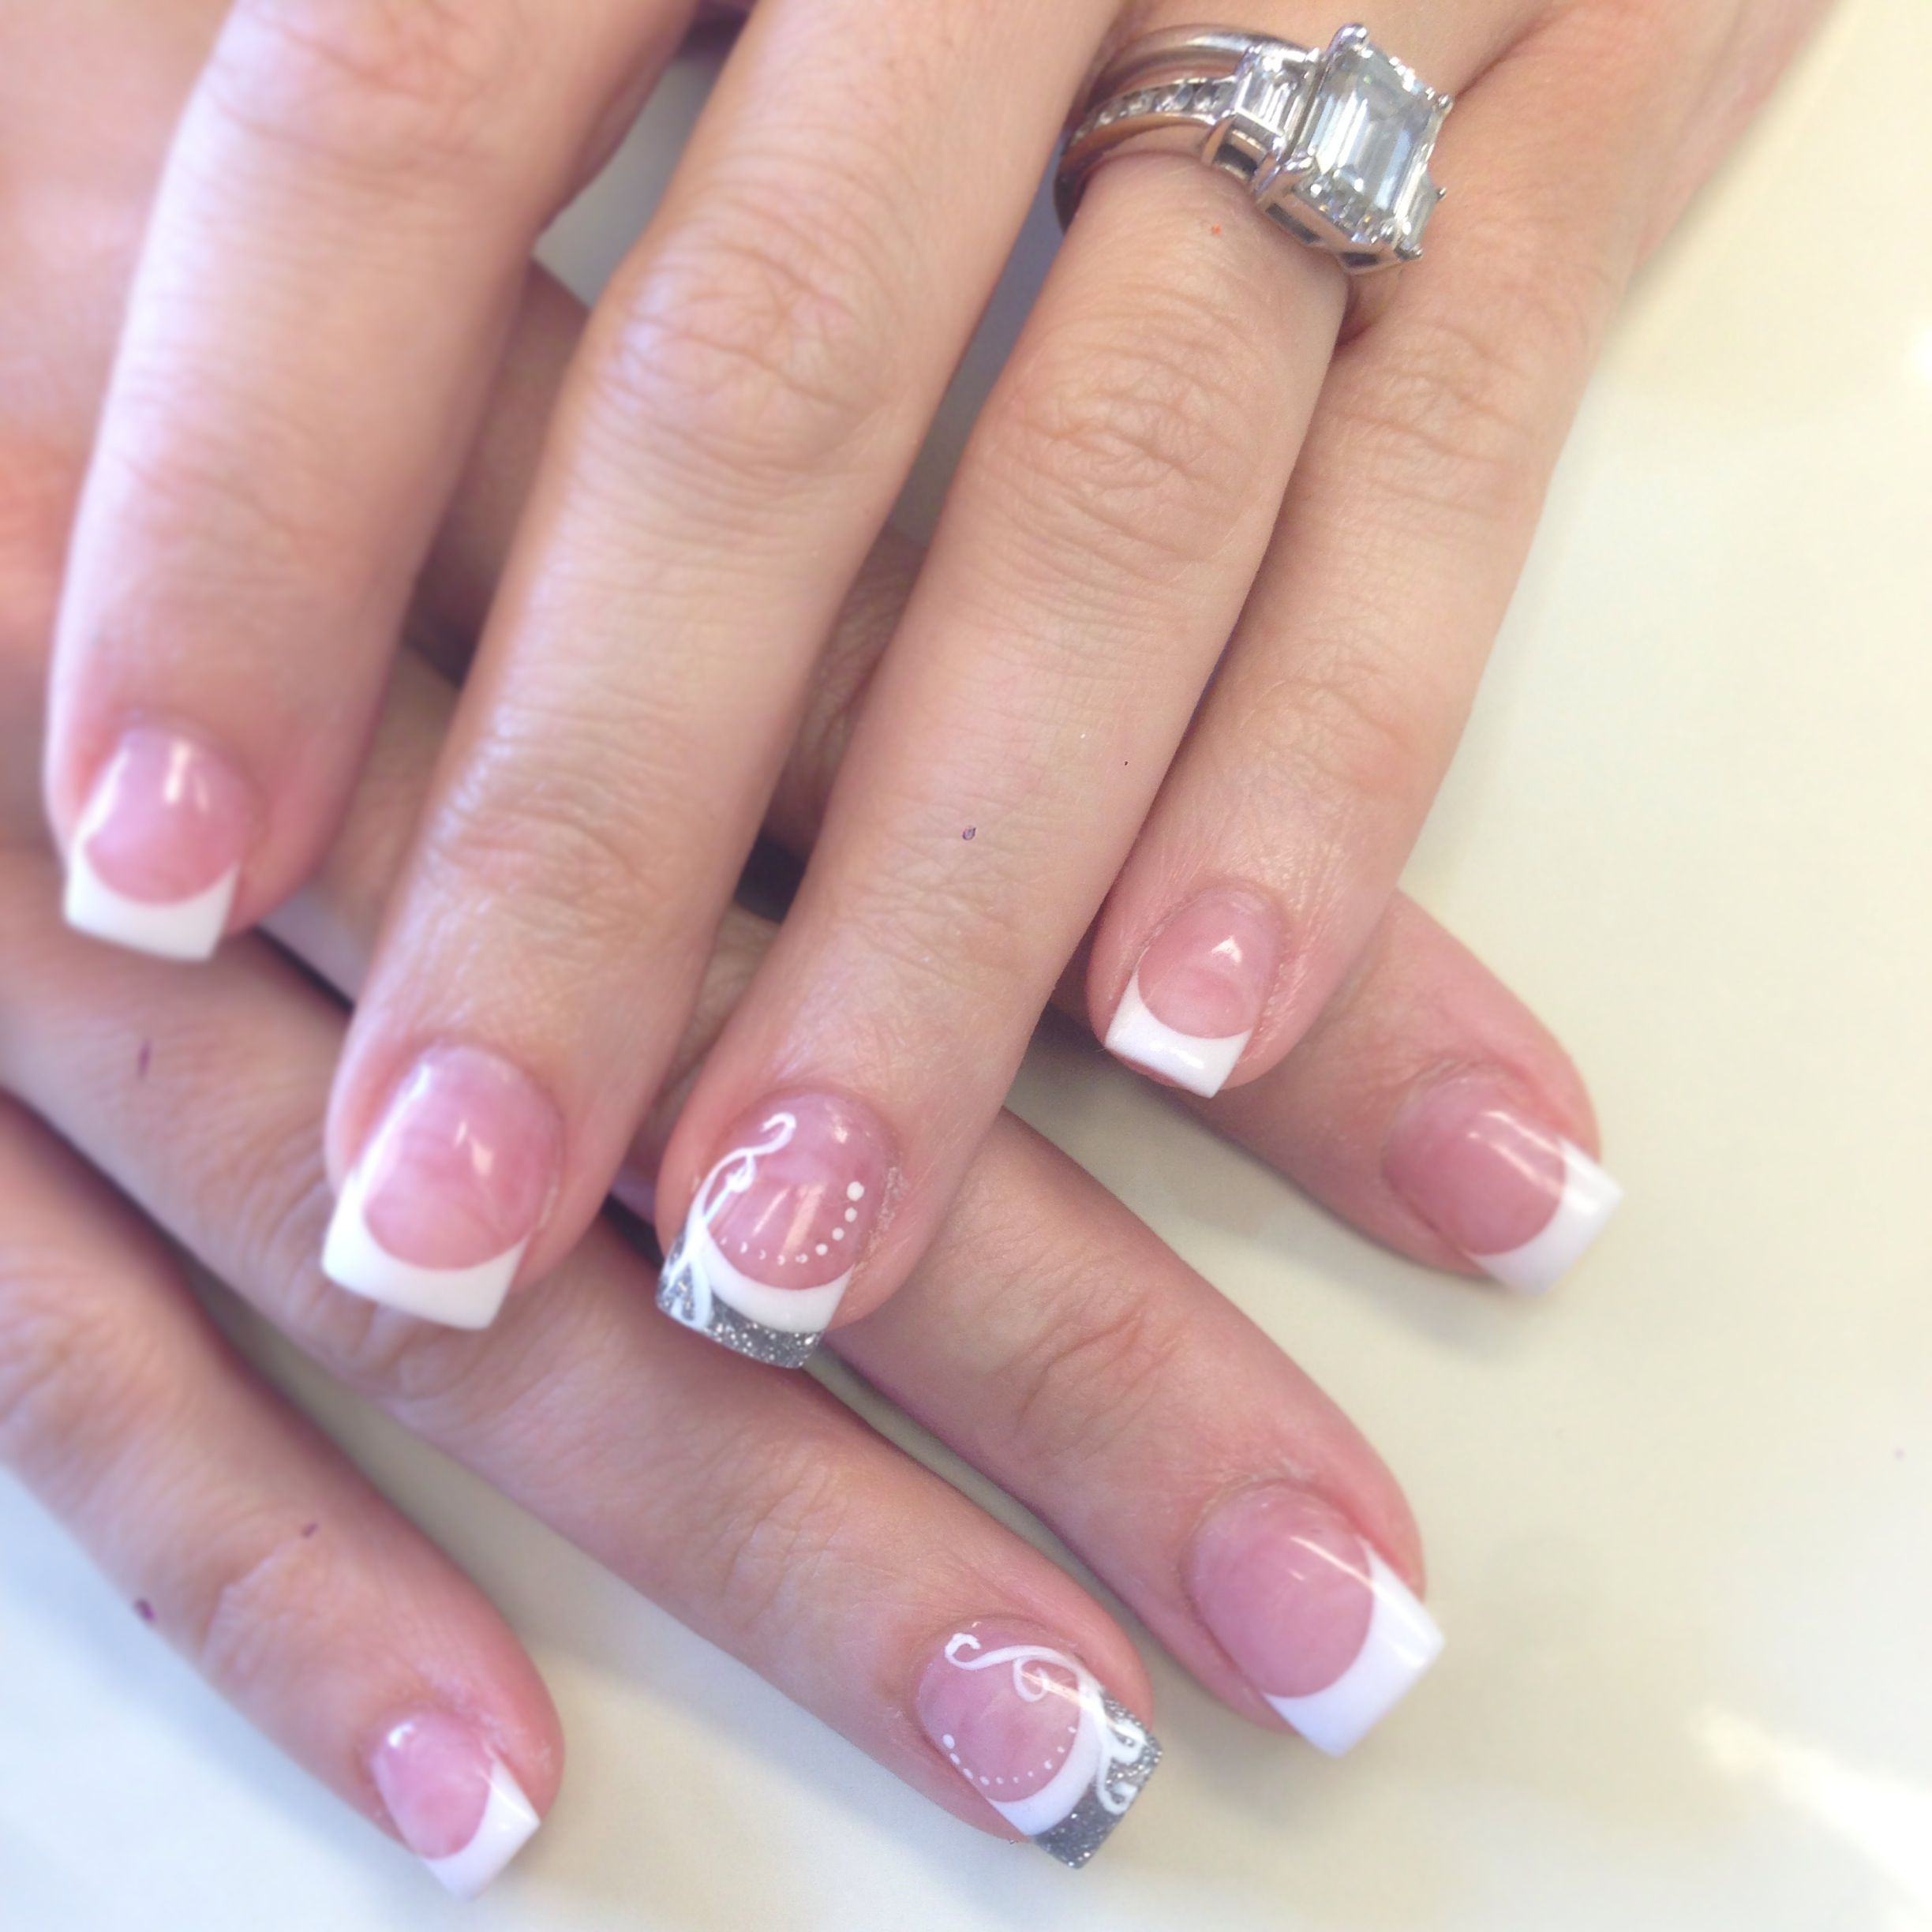 Dainty design on French | Nails by The Haute Spot | Pinterest